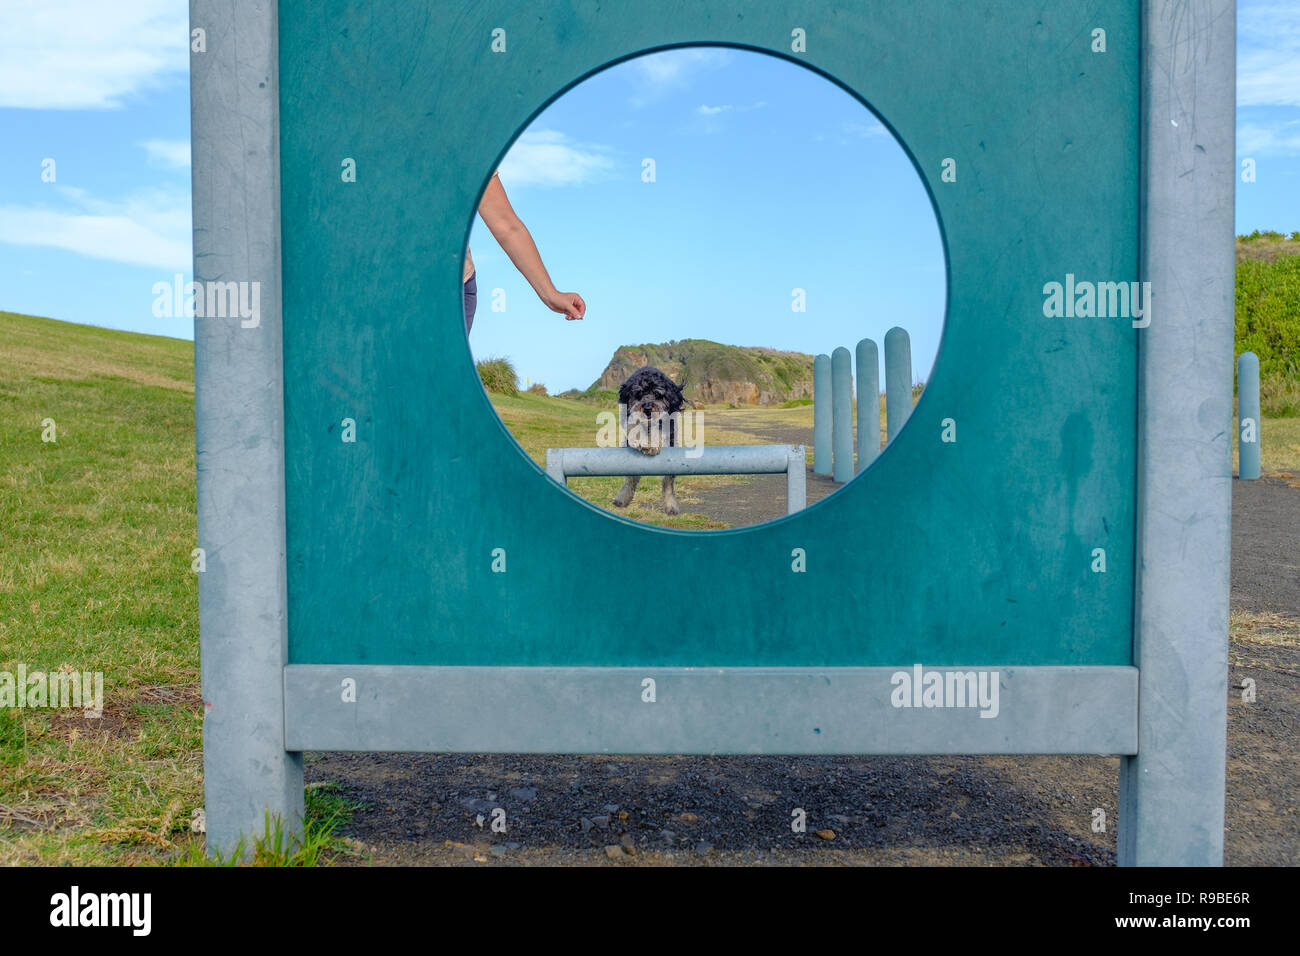 Dog training, healthy dog outside exercising jumping over a jump through hoop at dog agility park with dog trainer or owner - Stock Image